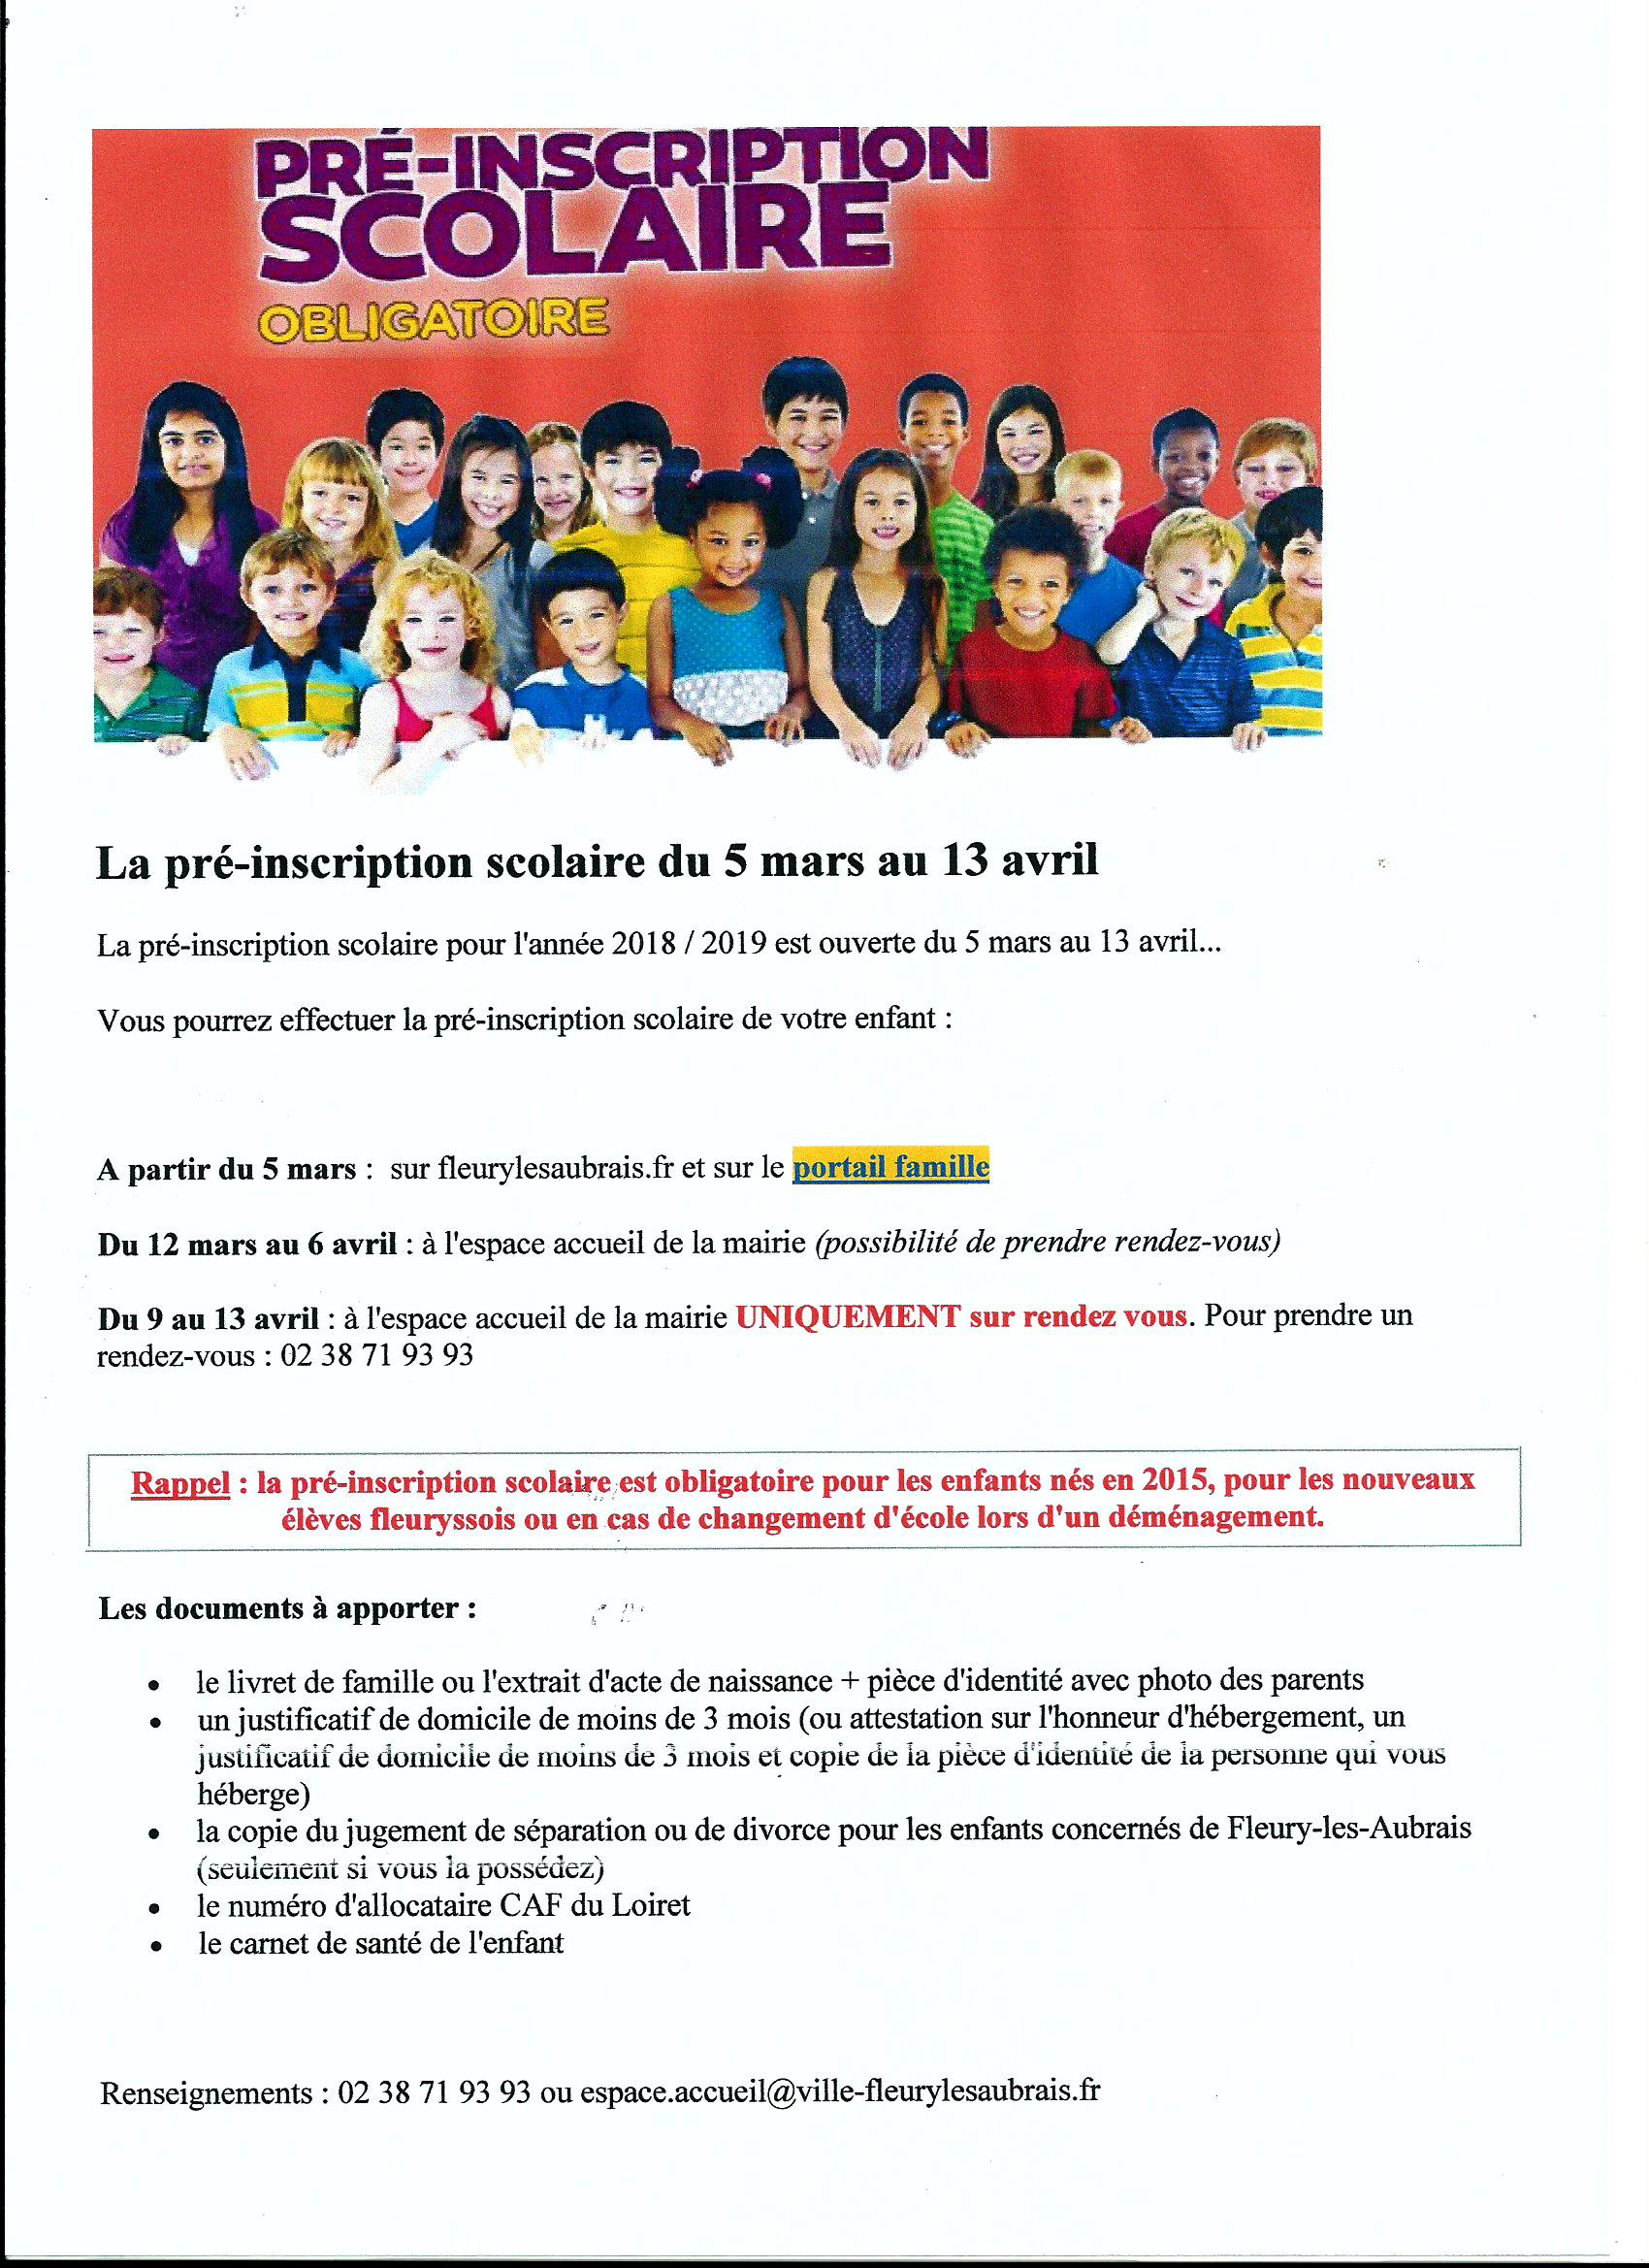 Scan La pré-inscription scolaire 5 mars au 13 avril 2018.jpg